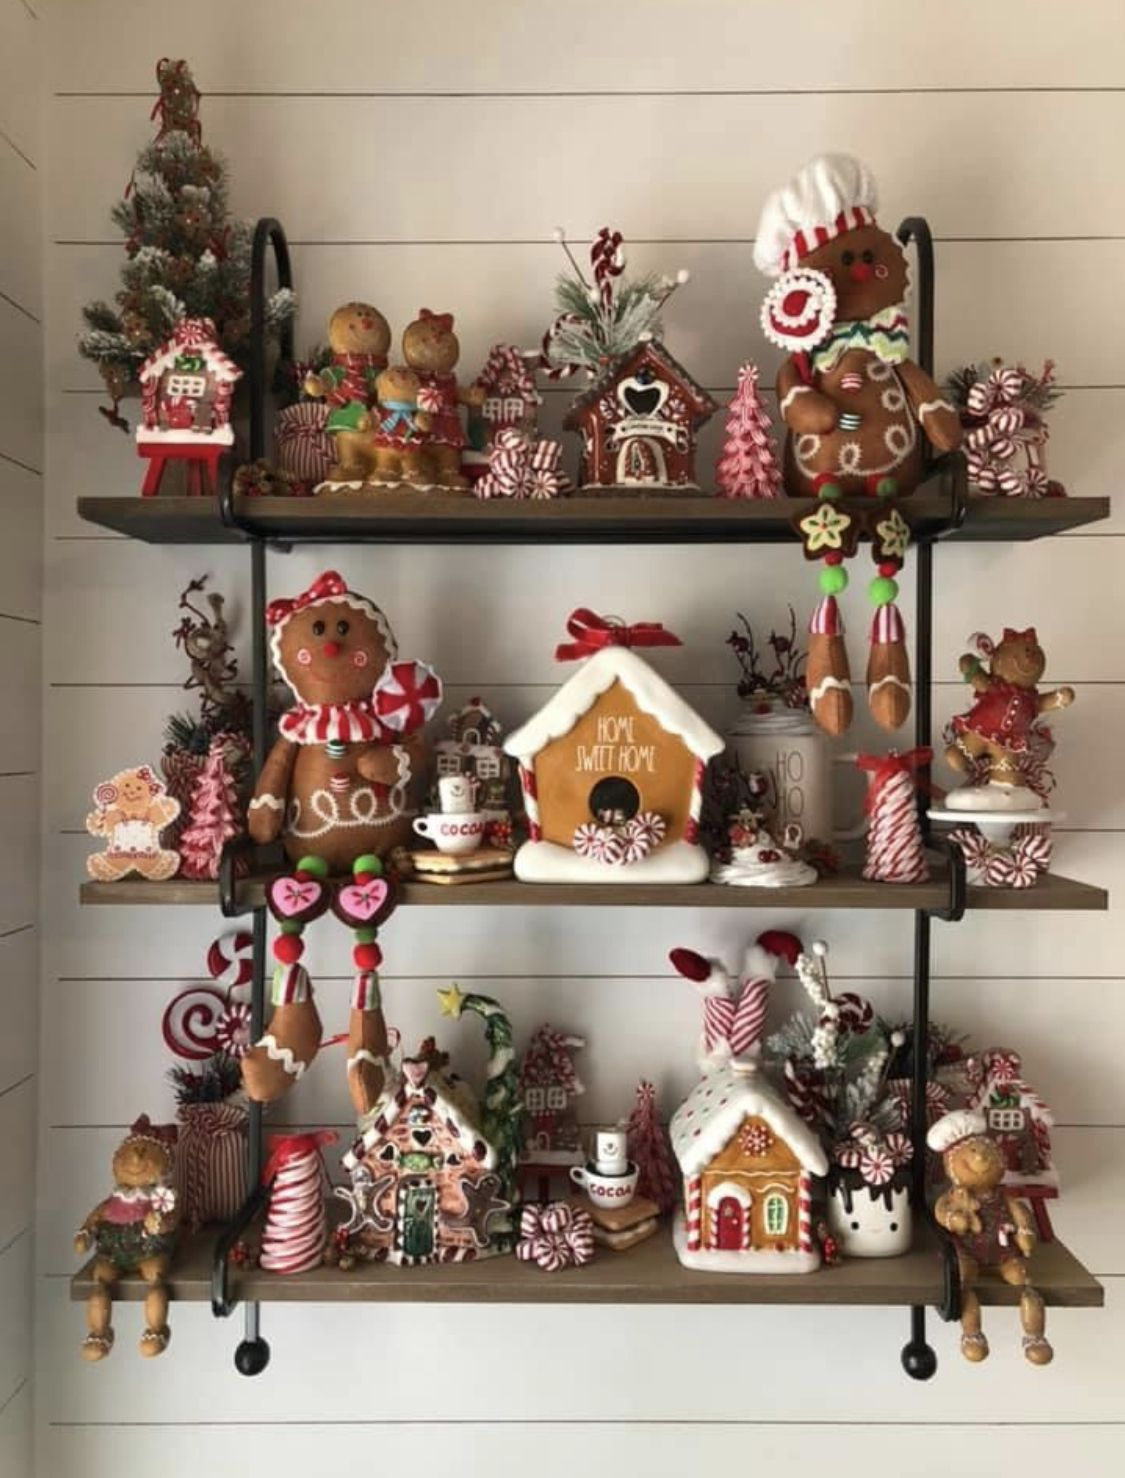 Pin By Marcia Beardsley On Christmas Gingerbread Christmas Decor Christmas Gingerbread Christmas Decorations